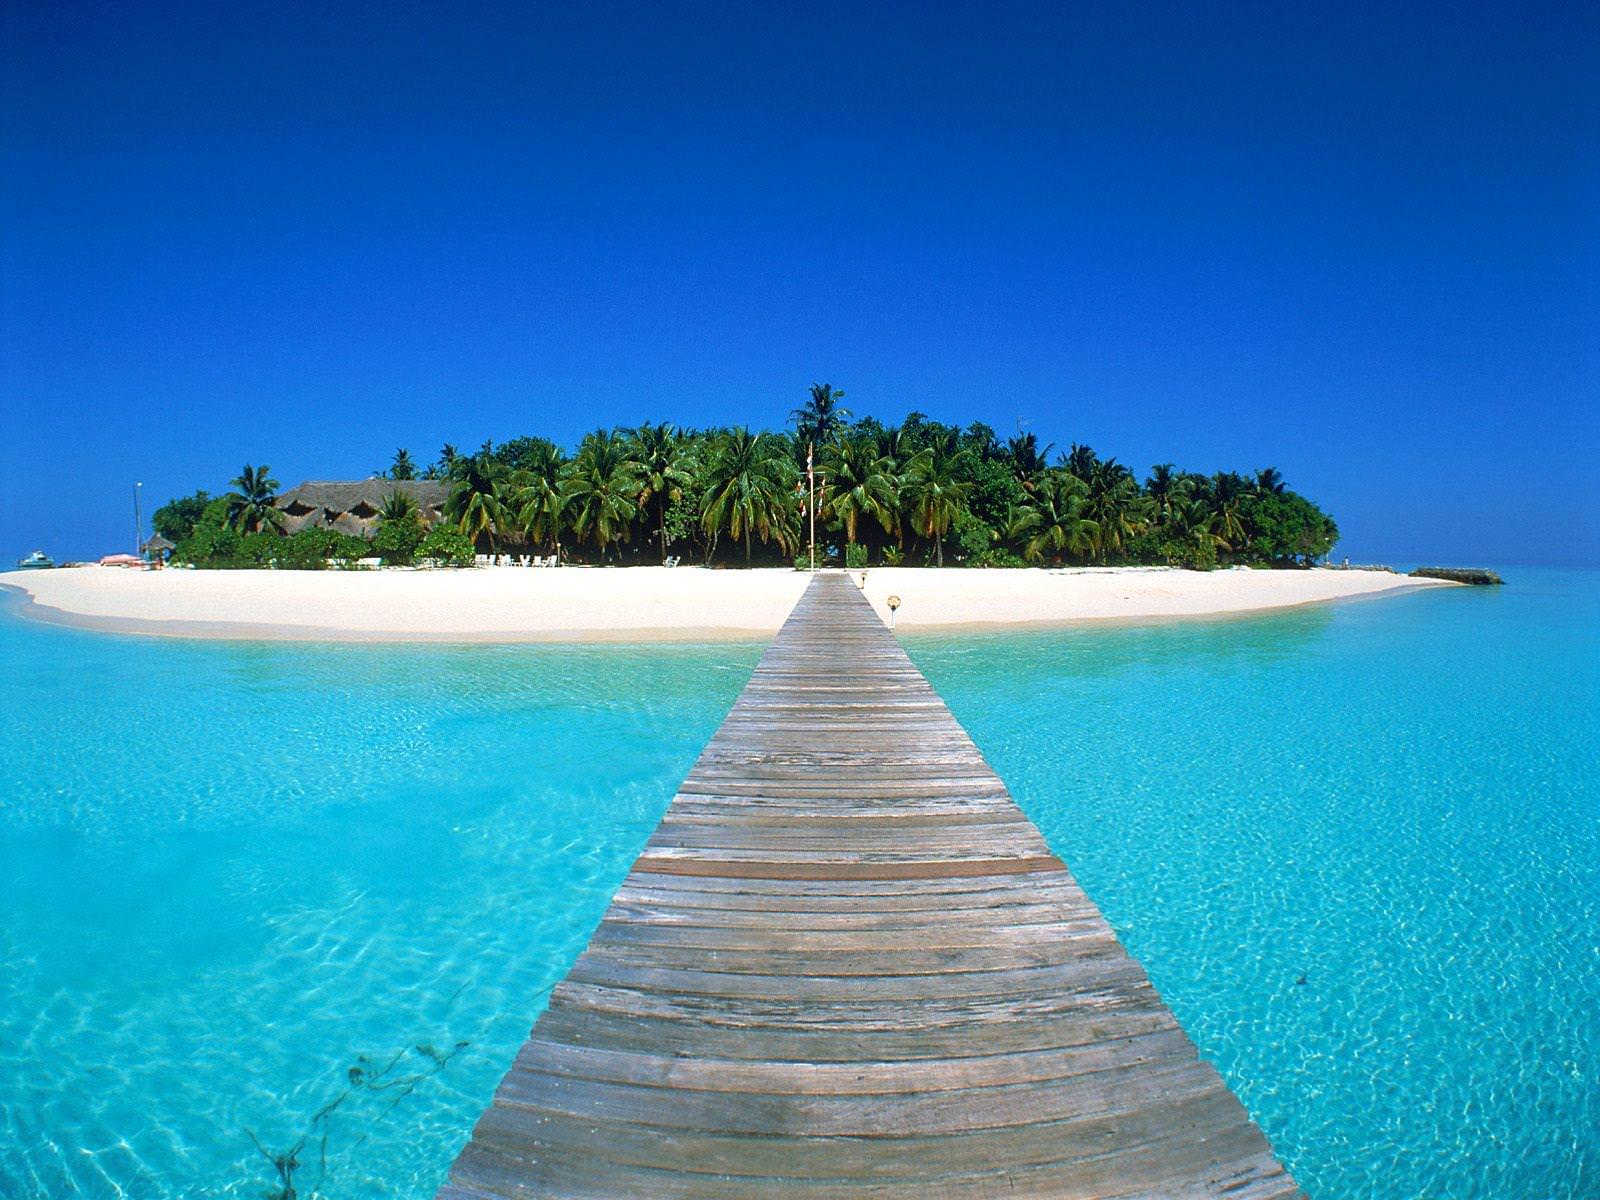 Tropical Oasis Island Maldives Background